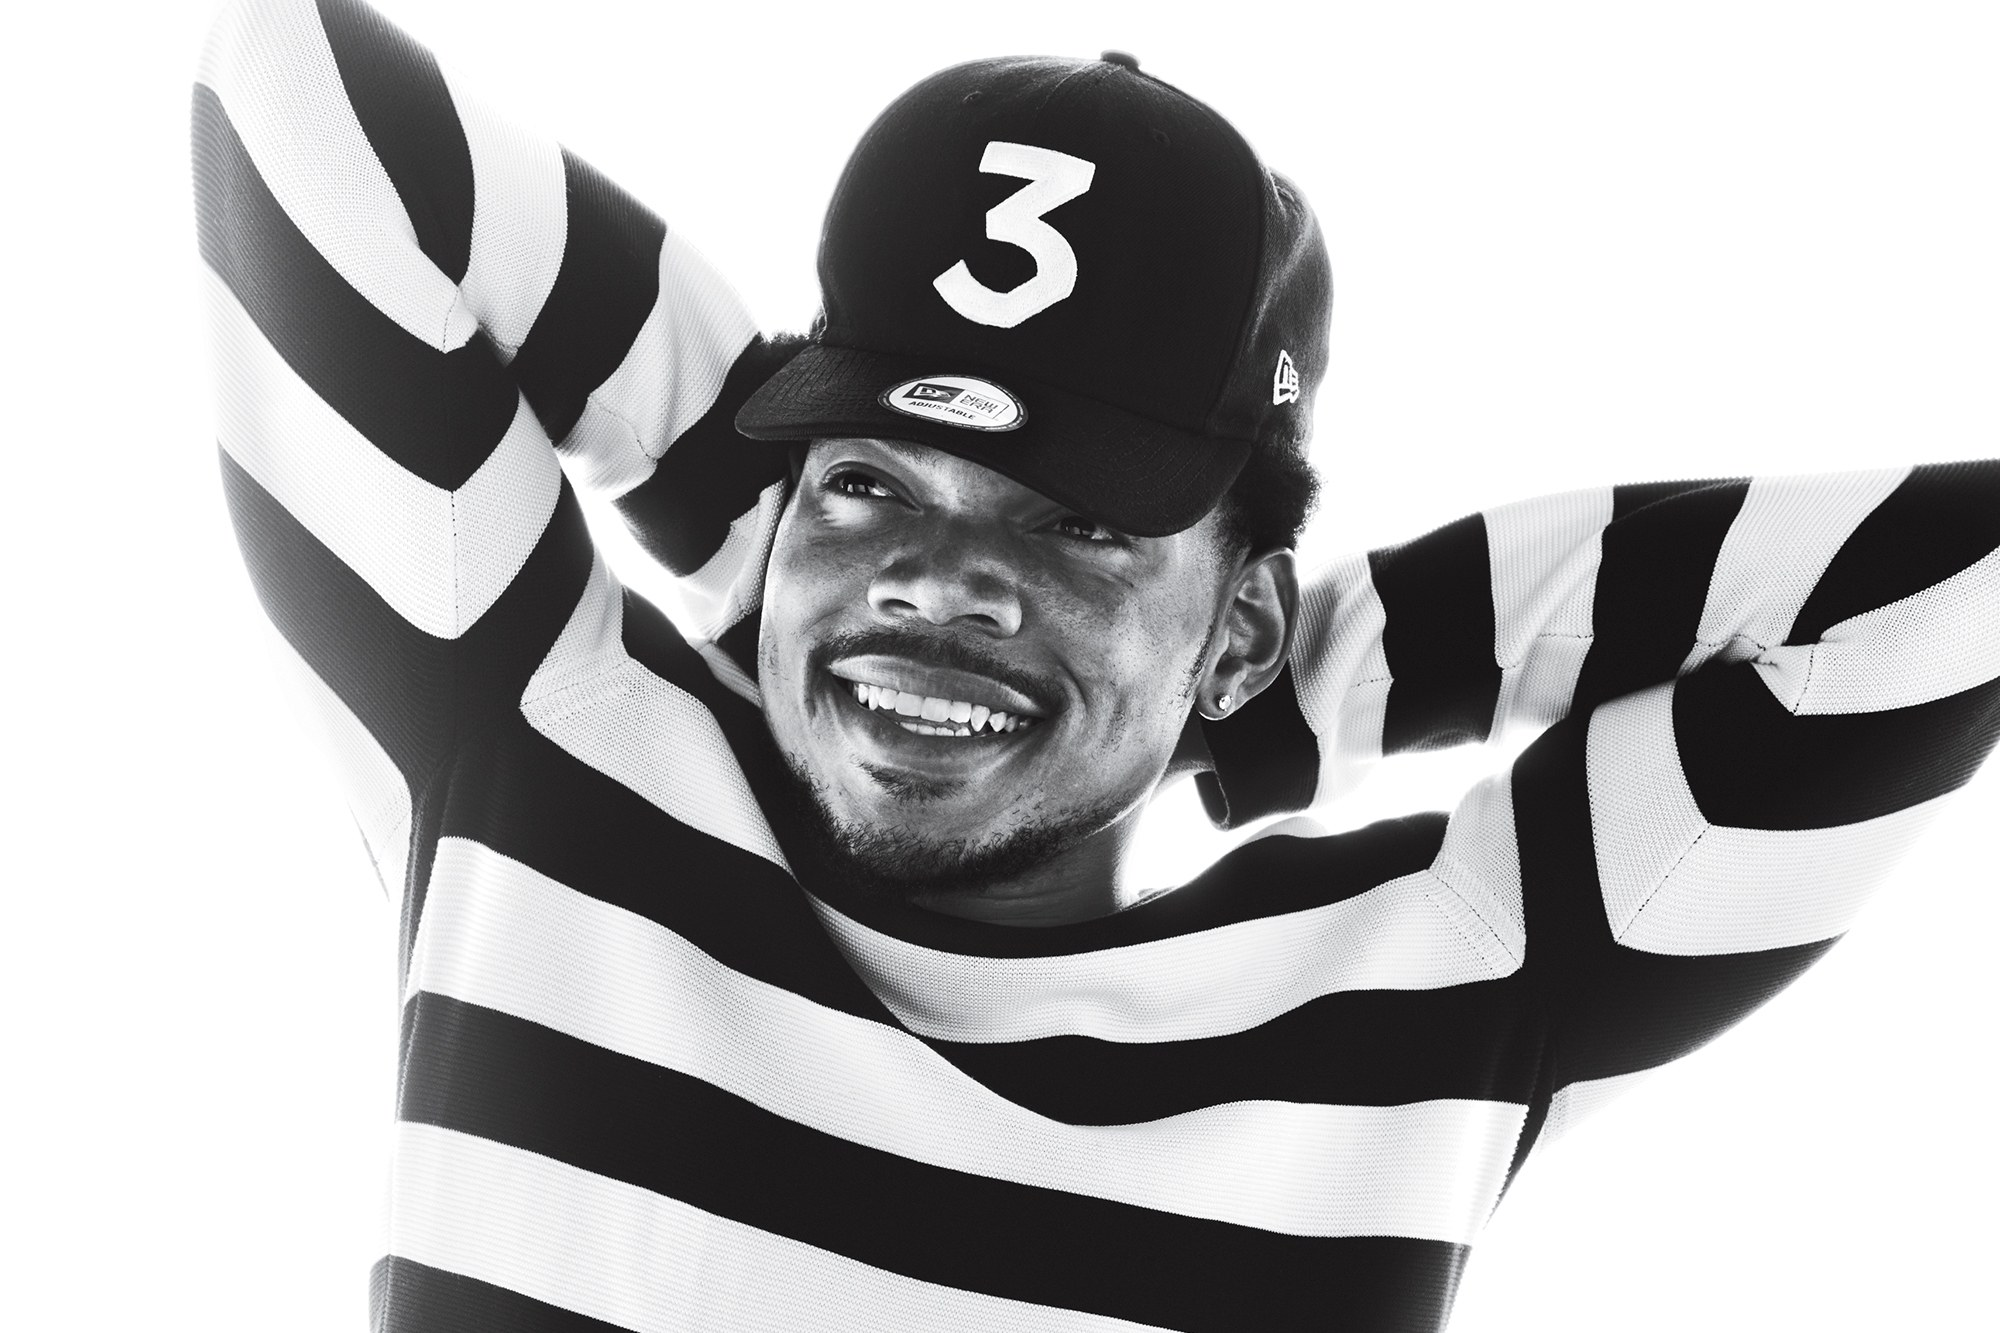 Hip-Hop and Digital Design - How do artists like Chance the Rapper, Jay-Z, and Solange Knowles contribute to the world of digital deign thinking?